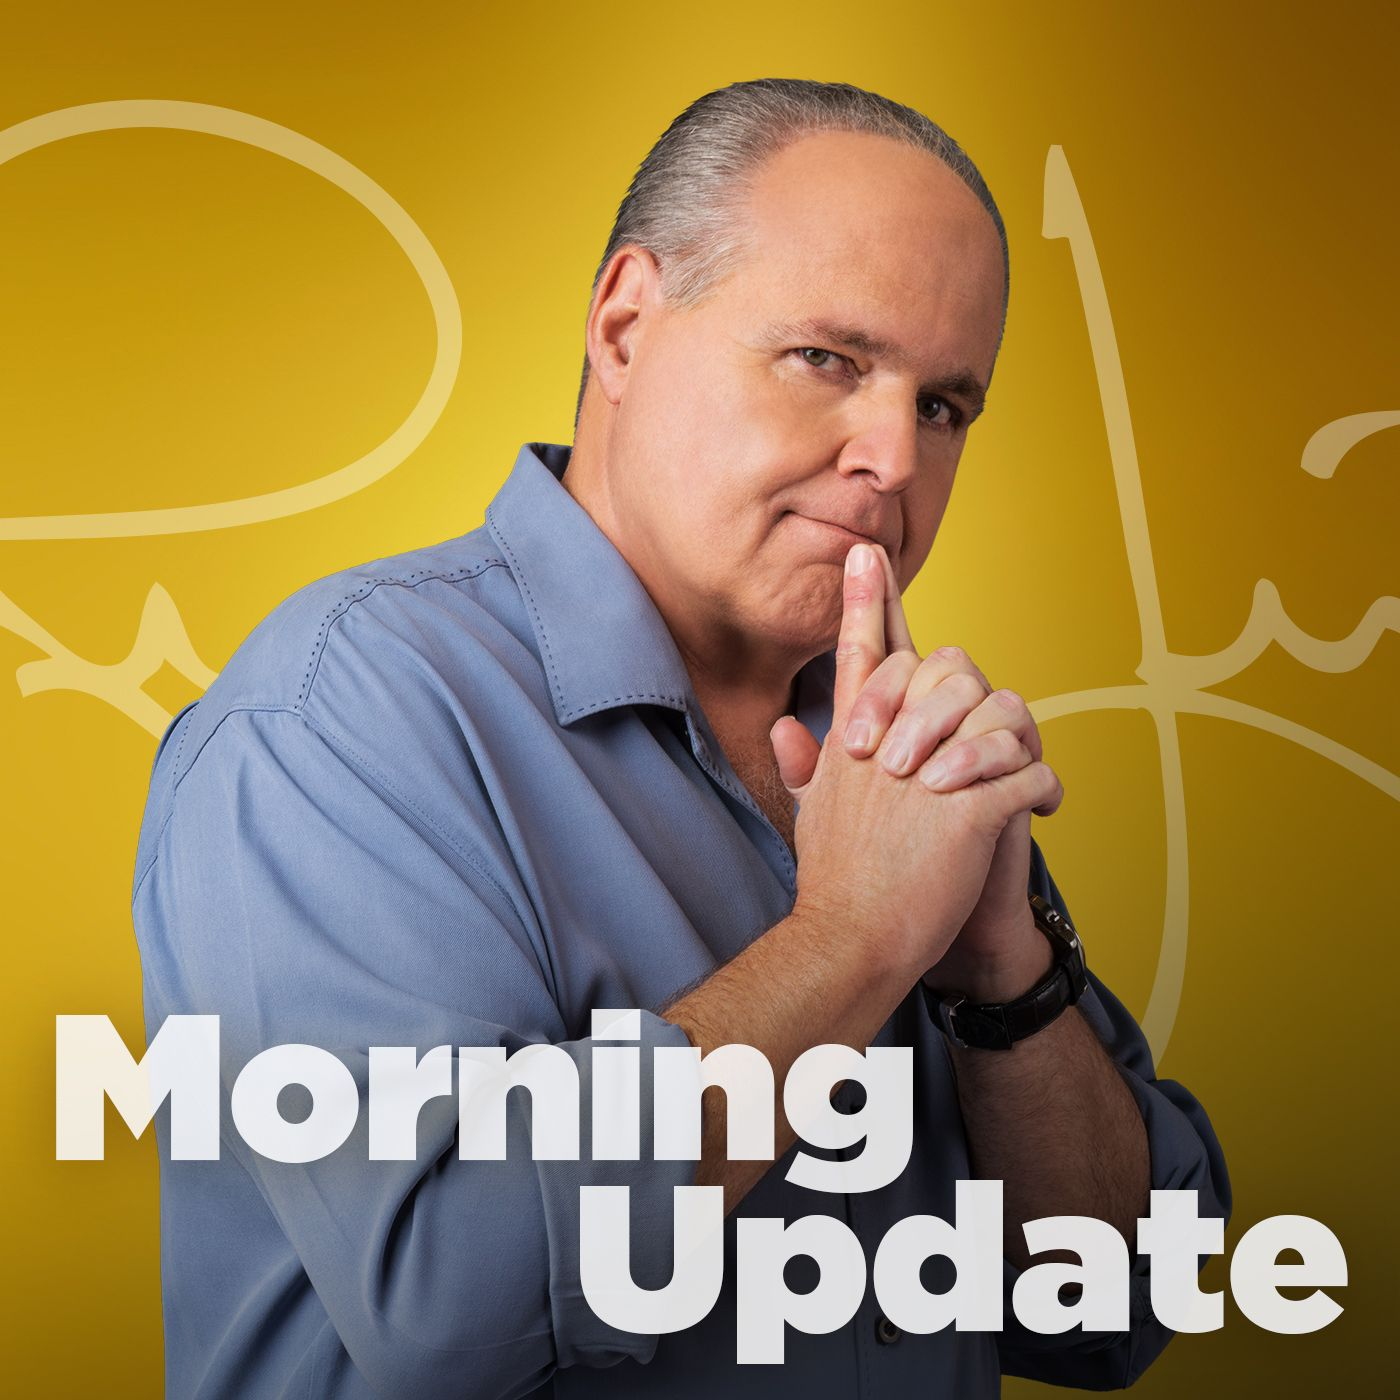 Rush Limbaugh Jun 25, 2020